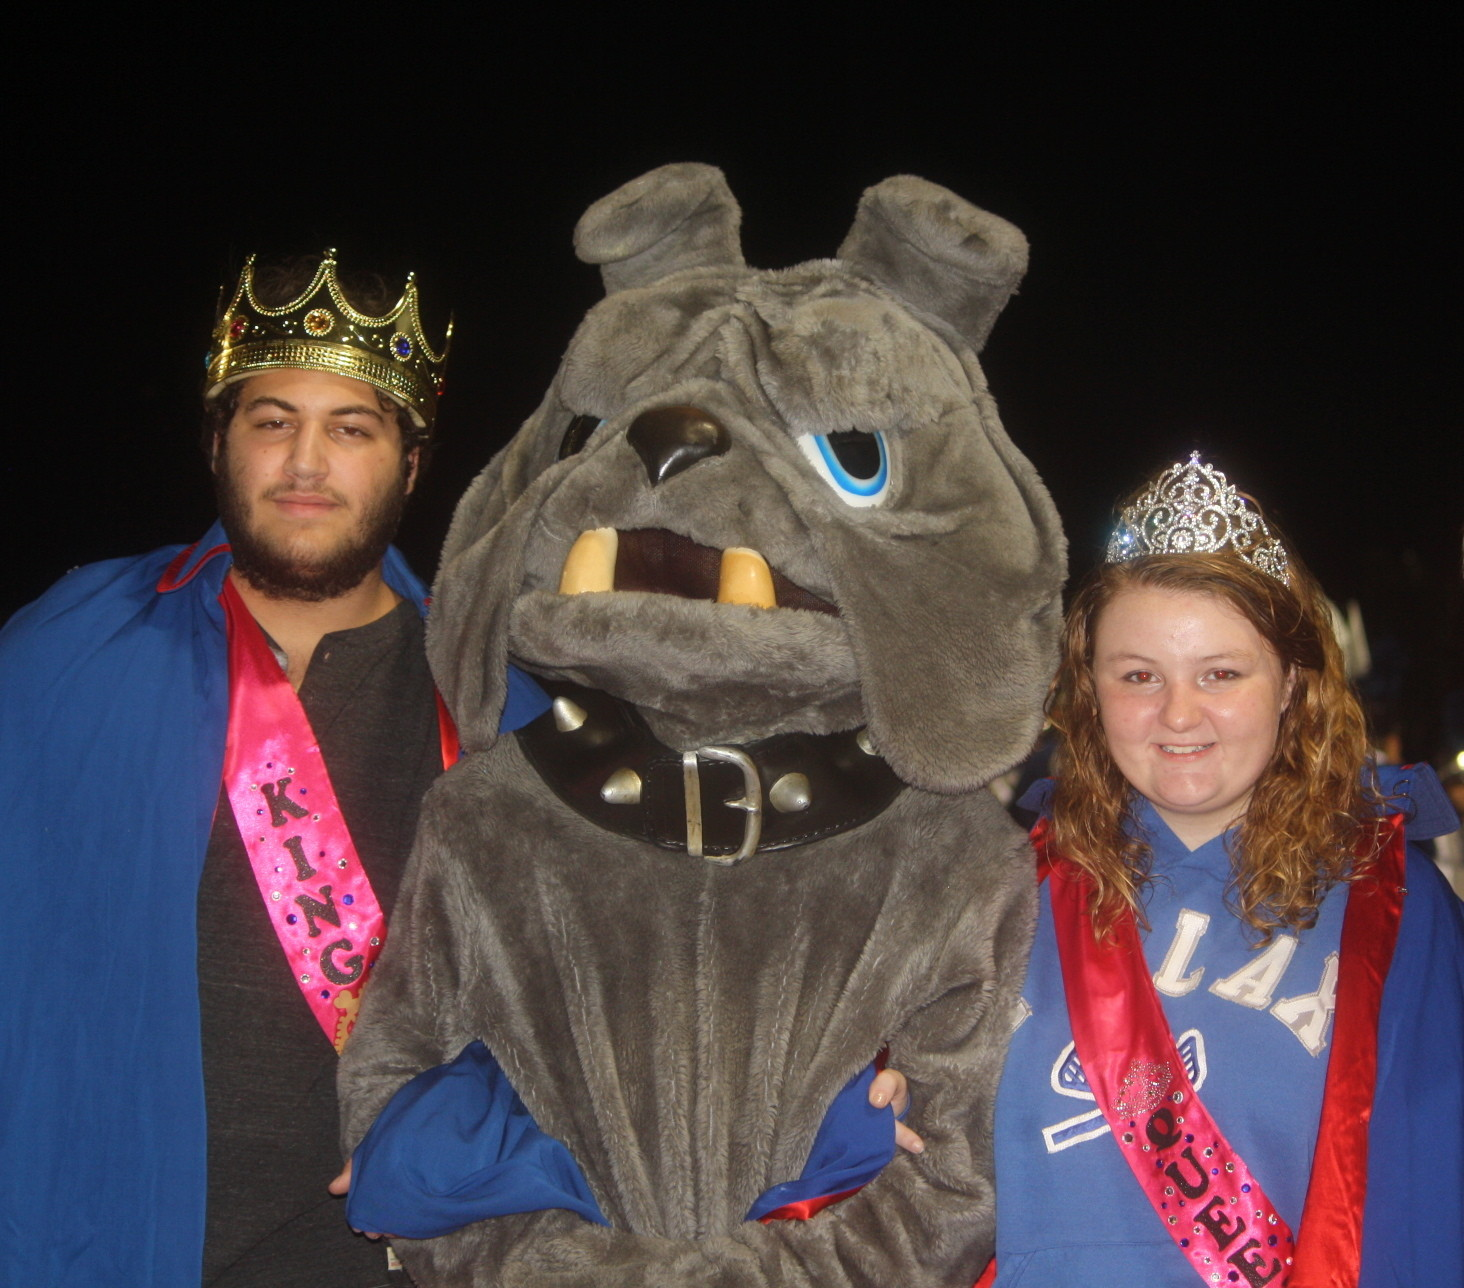 During the halftime festivities, homecoming king Sam Rabiner and queen Hannah Piazza were escorted onto the field by the Marines mascot.